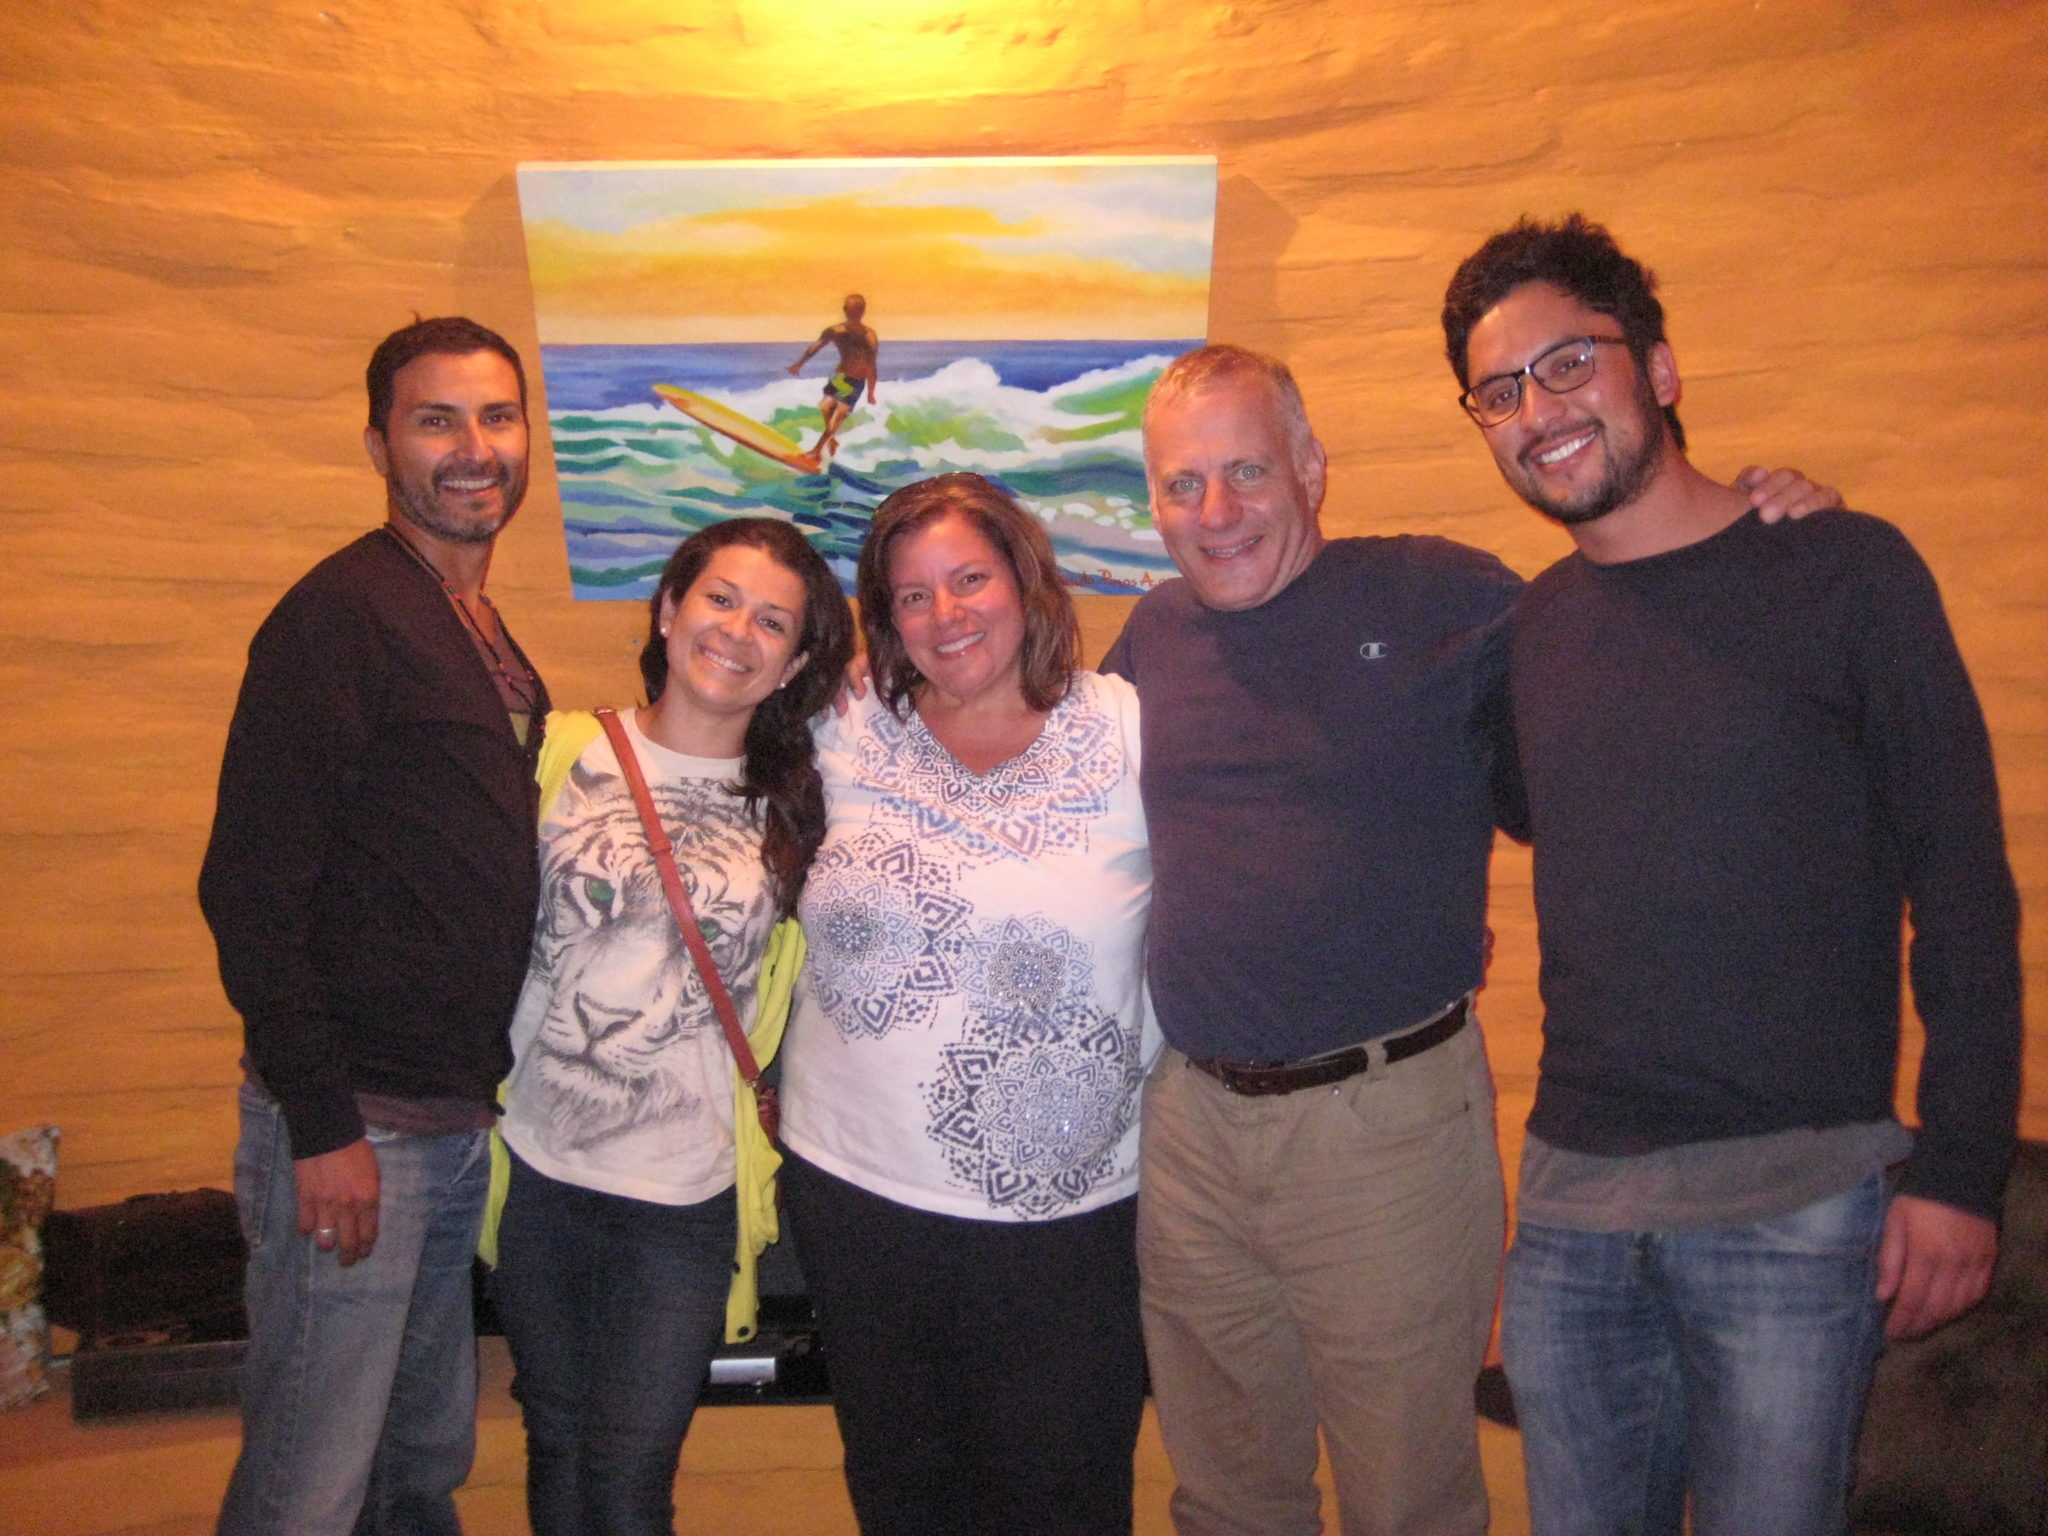 Simon, Maria Olga, Me, my husband Tony, and Mario met up in Quito before our flight.